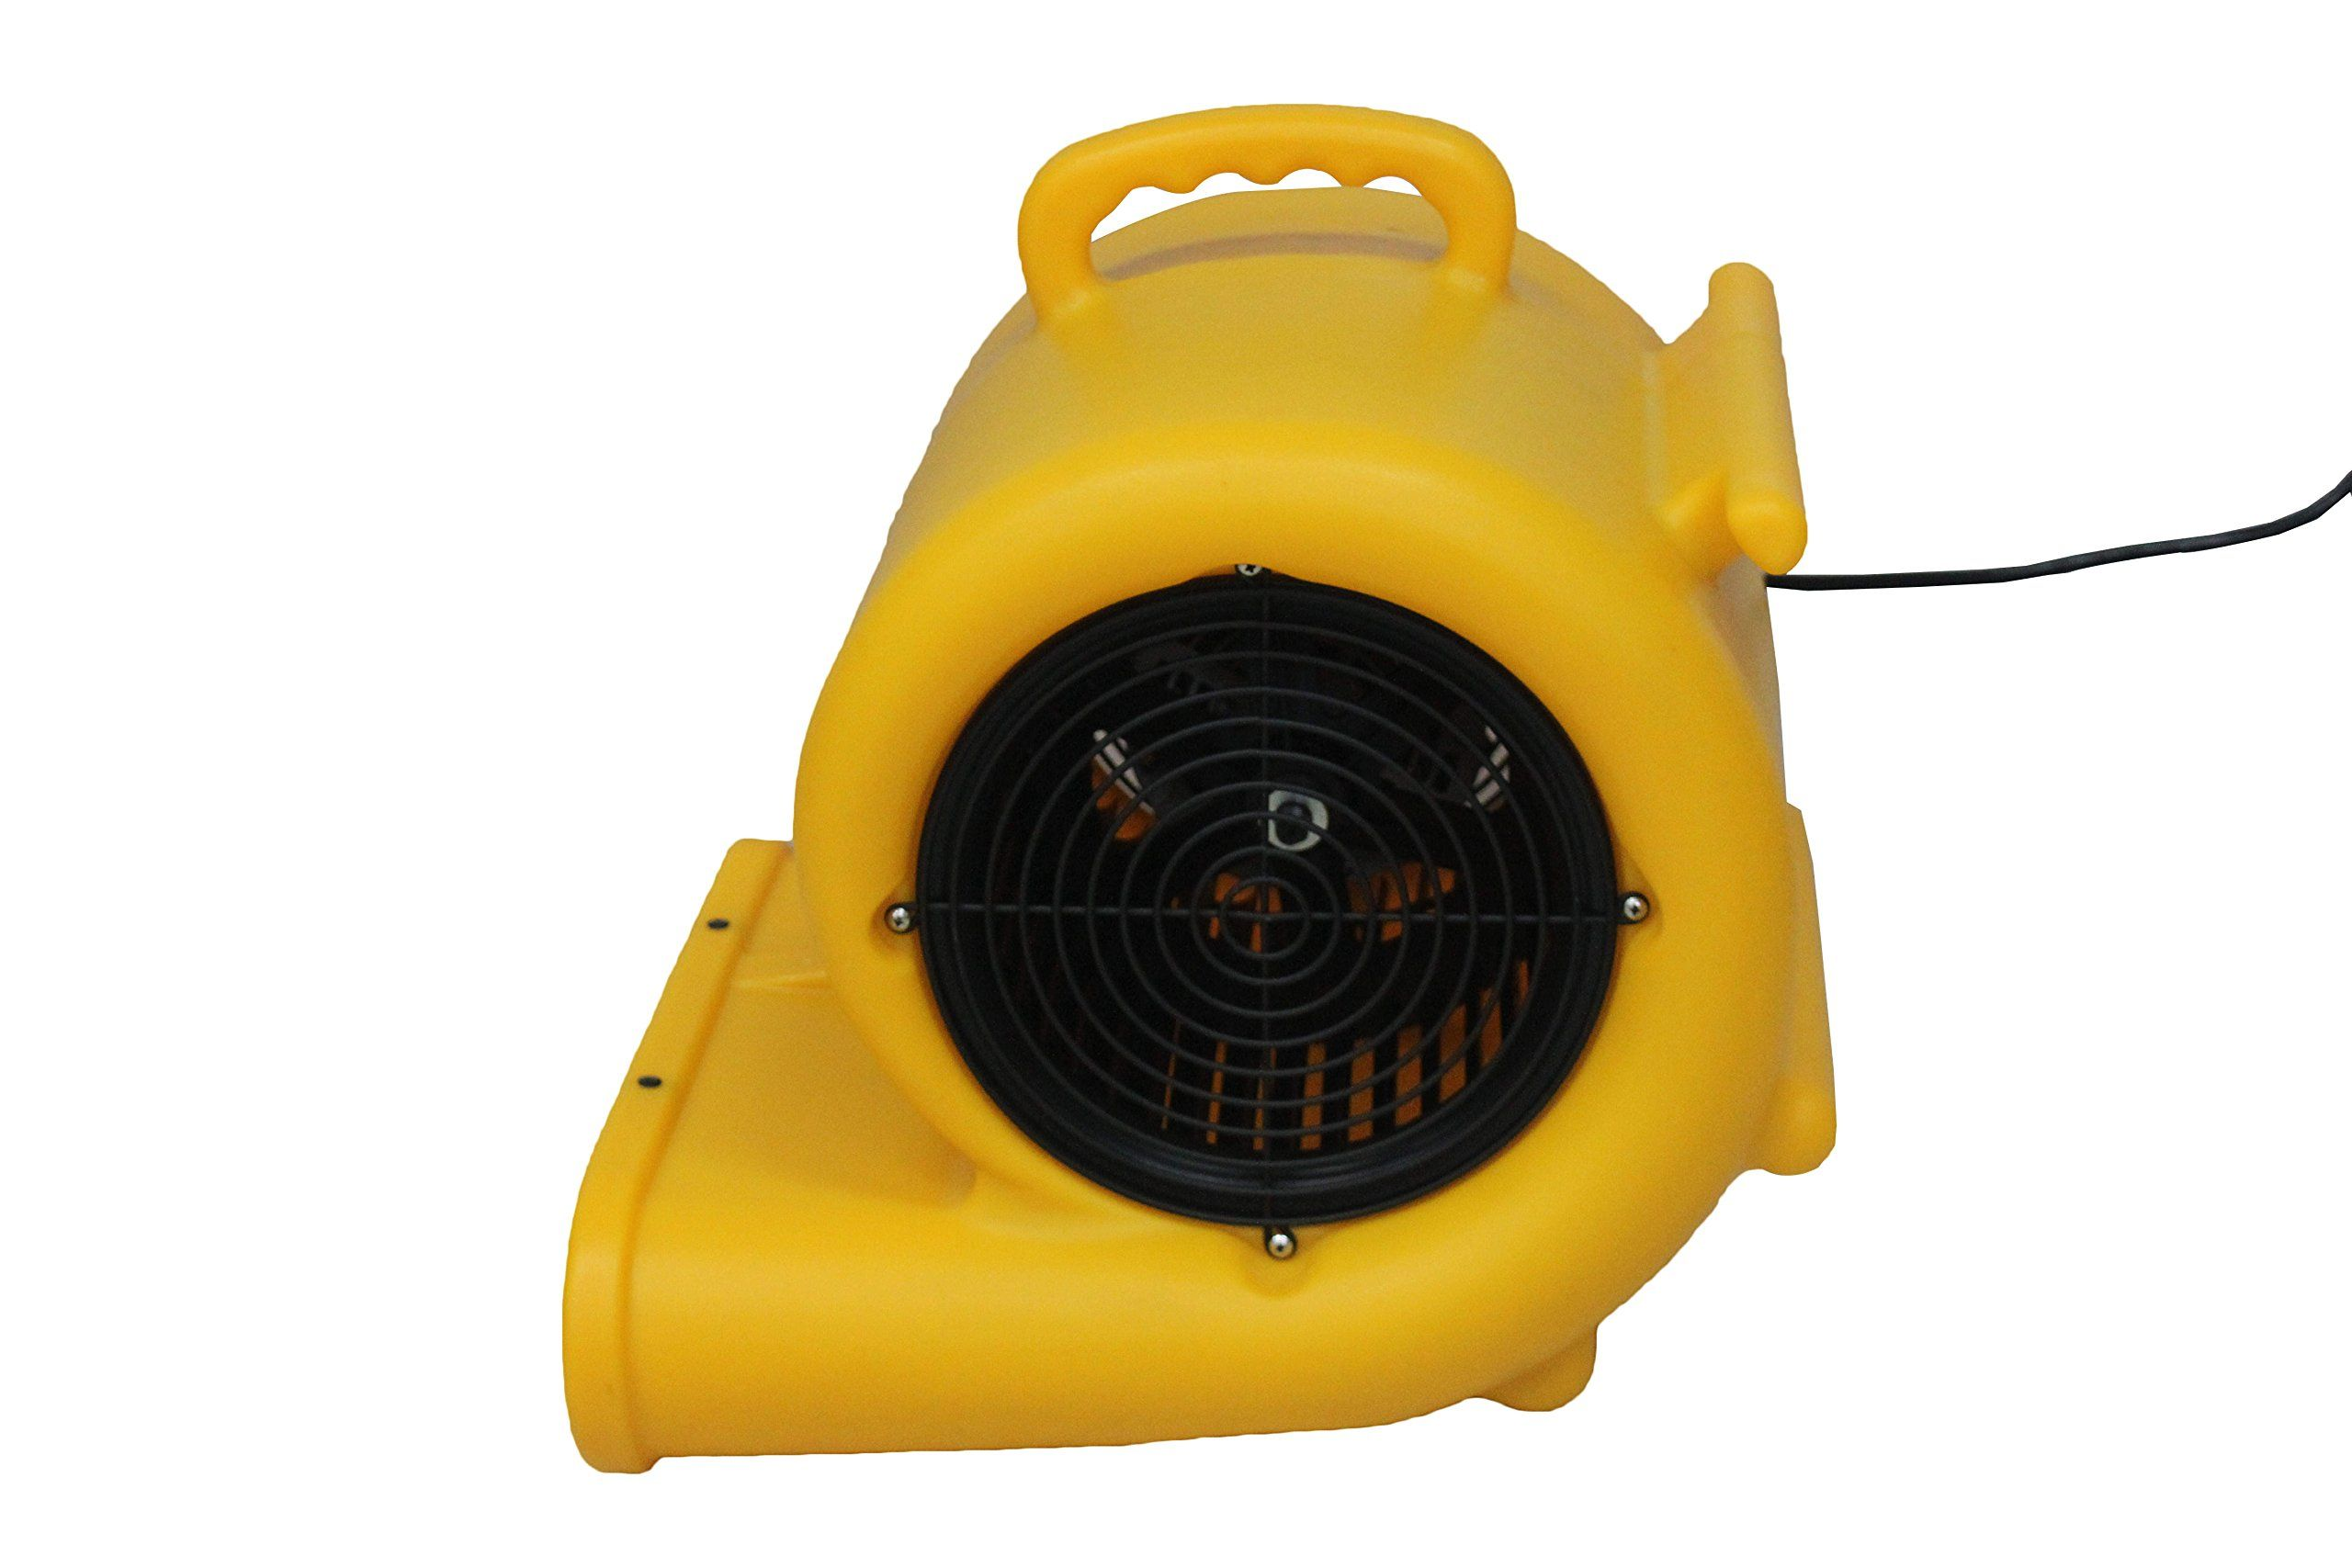 1 3 Horsepower Zoom Centrifugal Floor Dryer Air Mover Commercial Quality Carpet Blower Take A Look At The Image By V Quality Carpets Kitchen Remodel Remodel